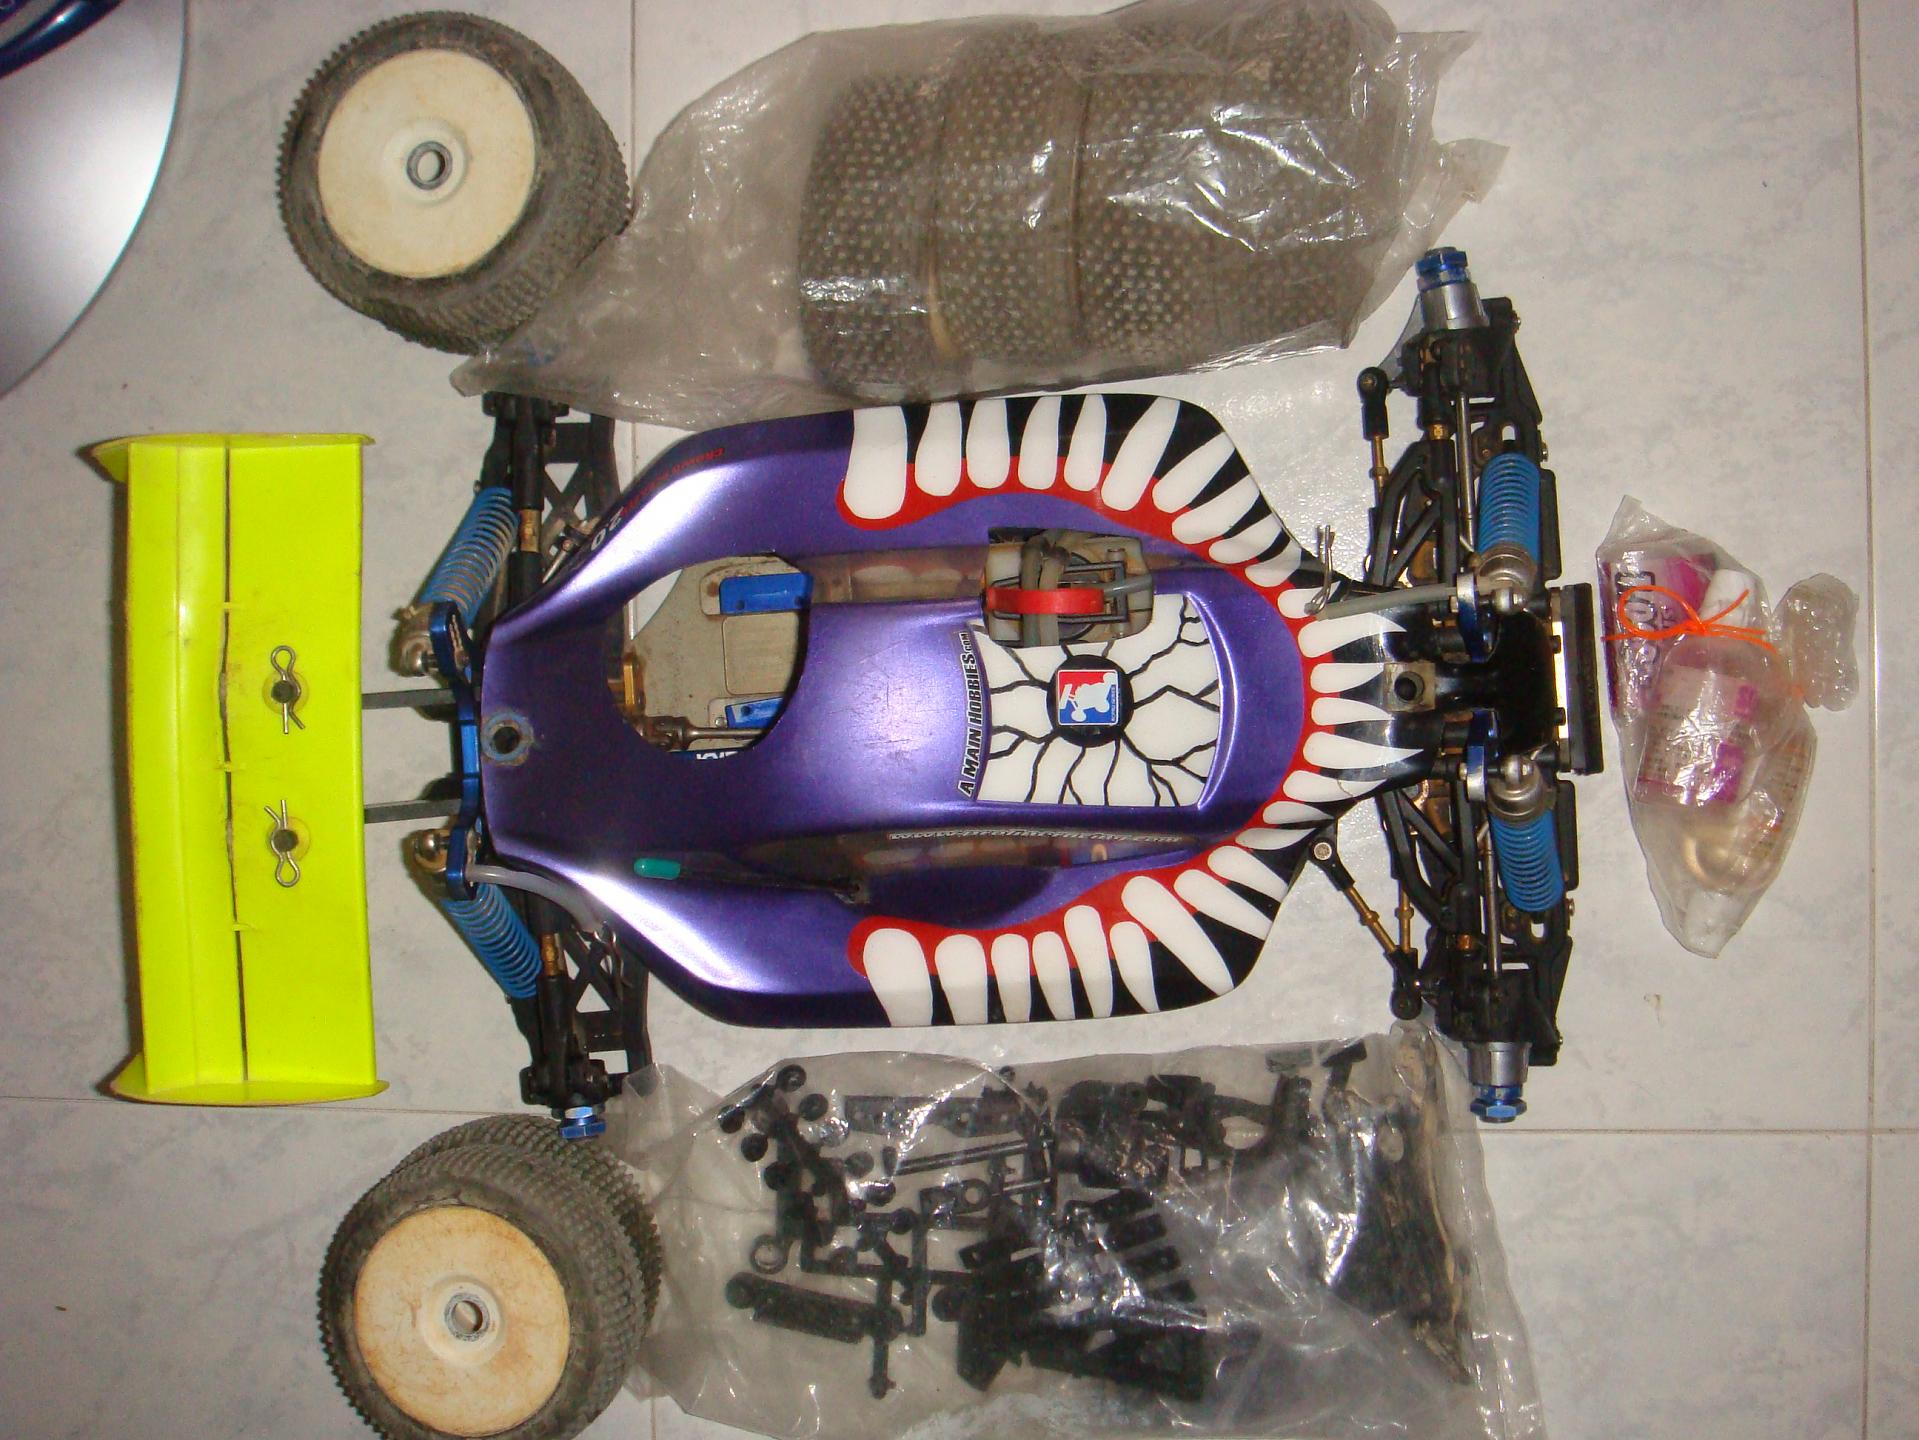 Kyosho 1/8 MP777WC & Futaba 3PM Tx rx - R/C Tech Forums